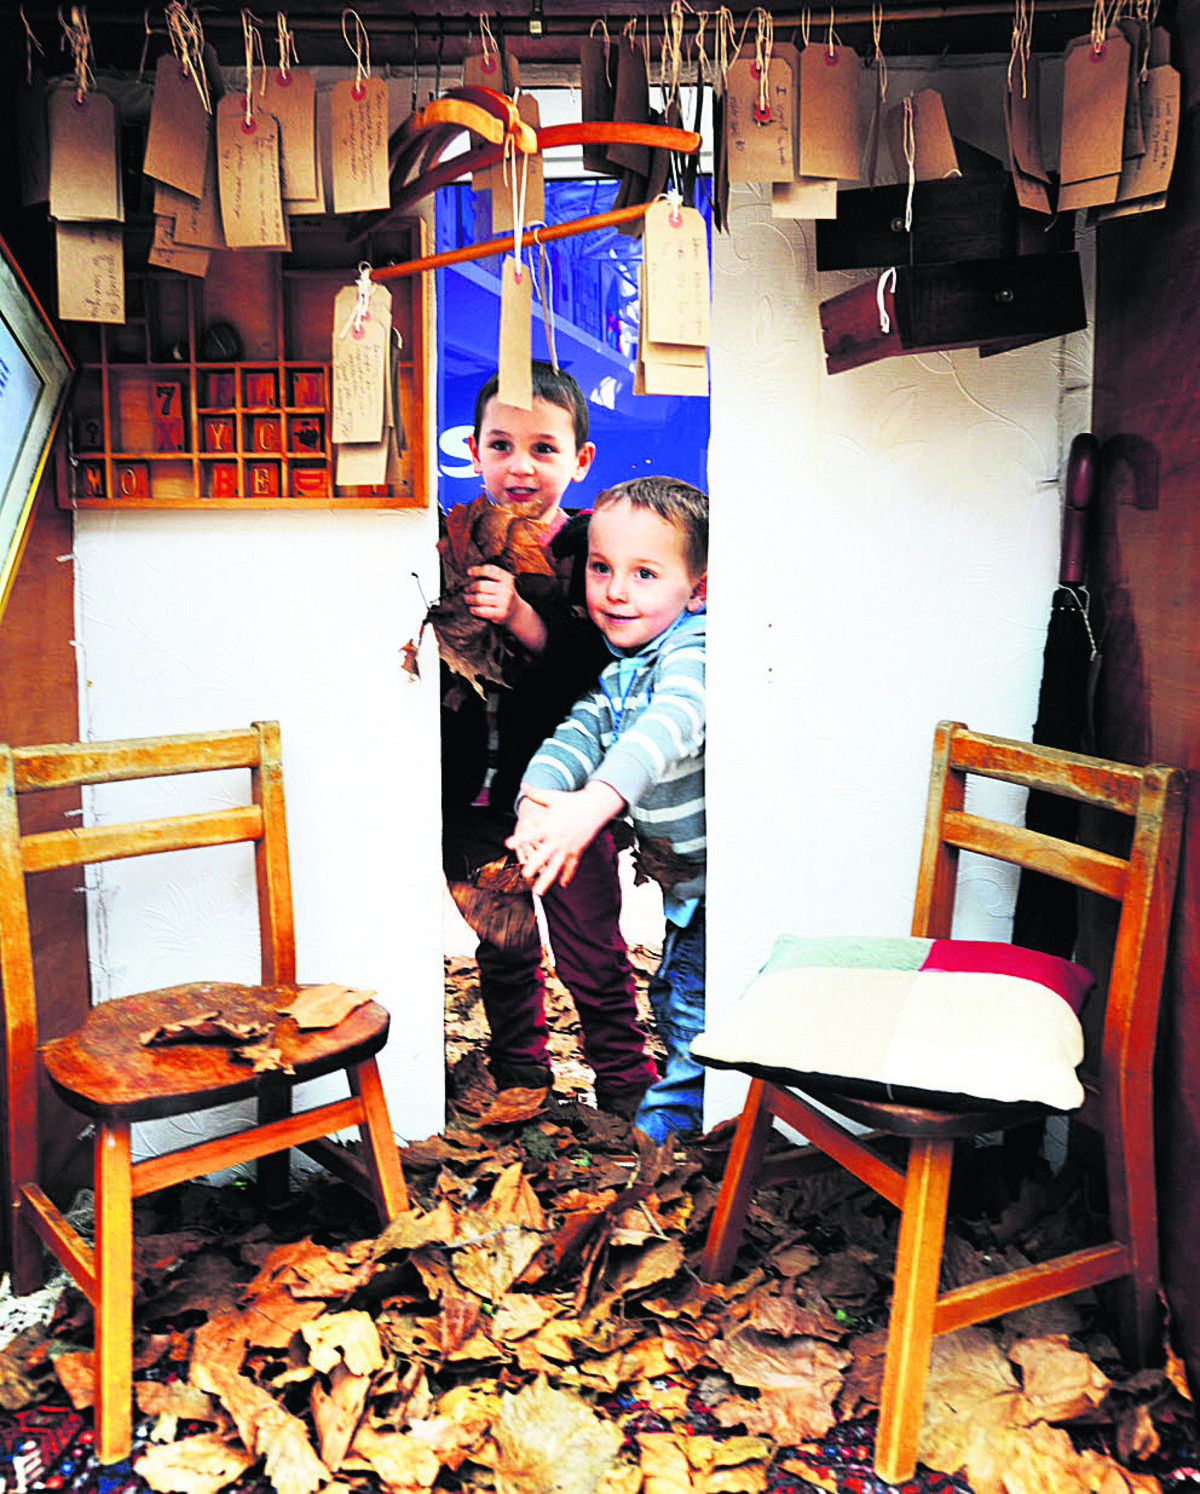 Exploring Cait Sweeney's wardrobe were Jack Reidy, four, left, and brother Olly, three. They were at the centre with their grandmother Diane Mortimer. Picture: OX64756 Jon Lewis